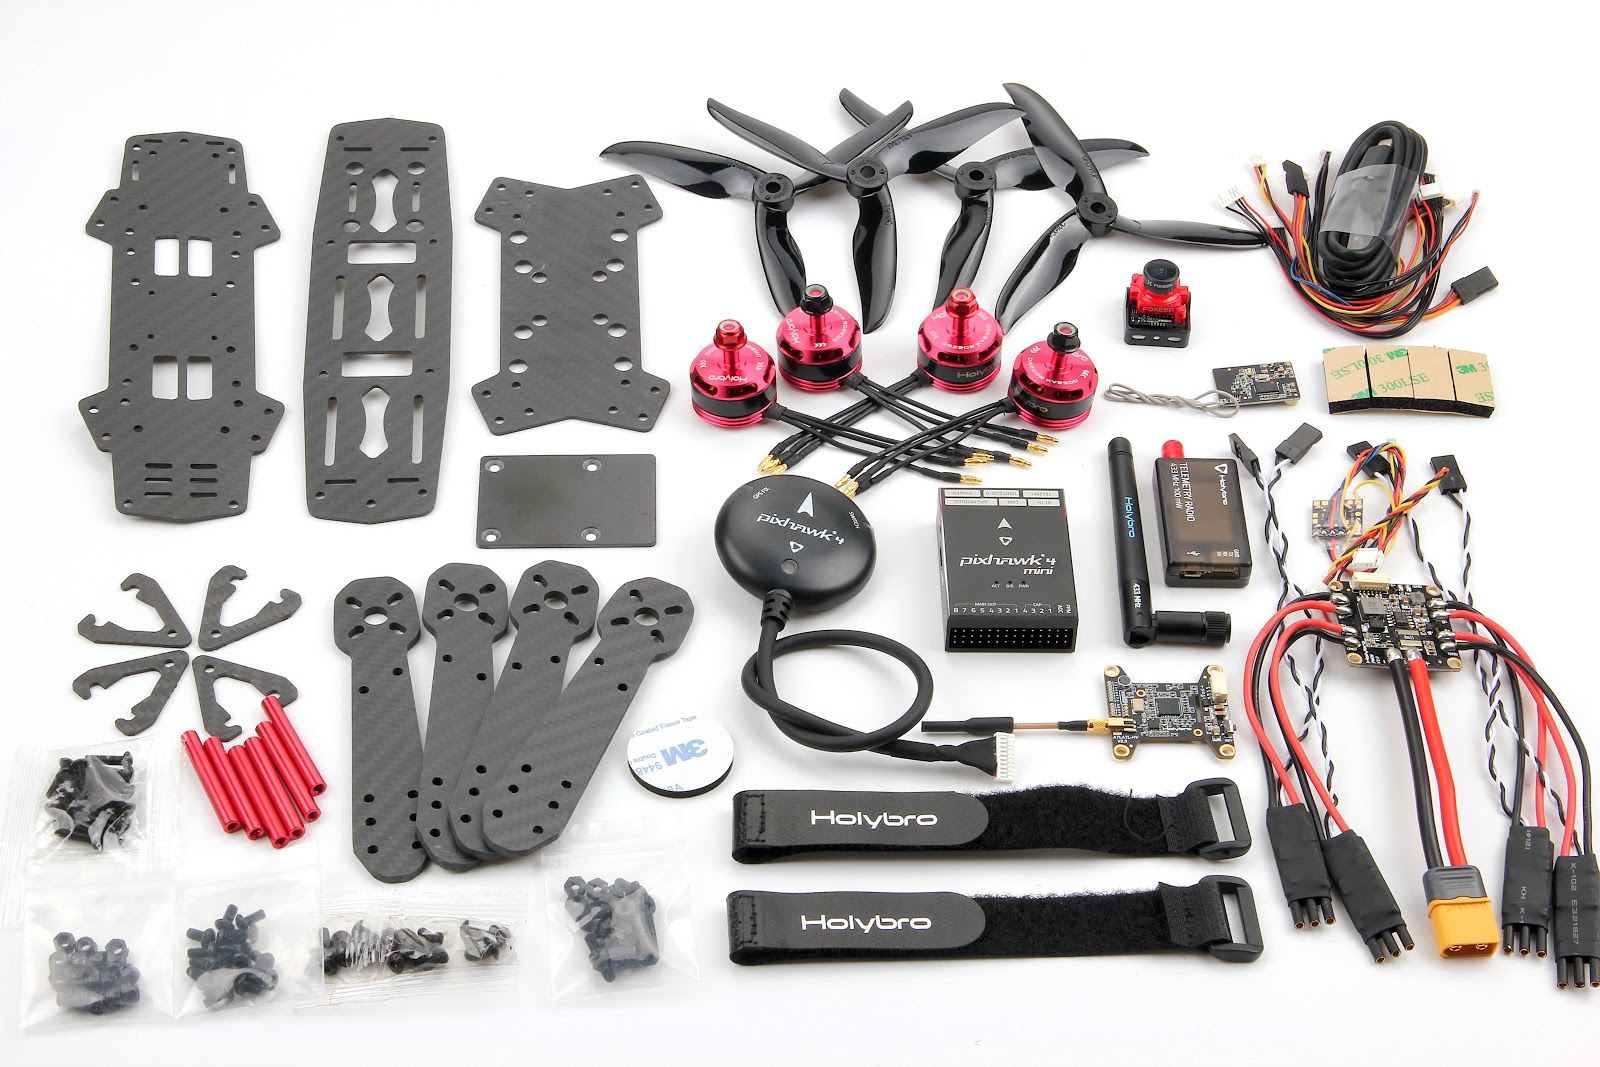 GetSparked Year in Review - News - SparkFun Electronics